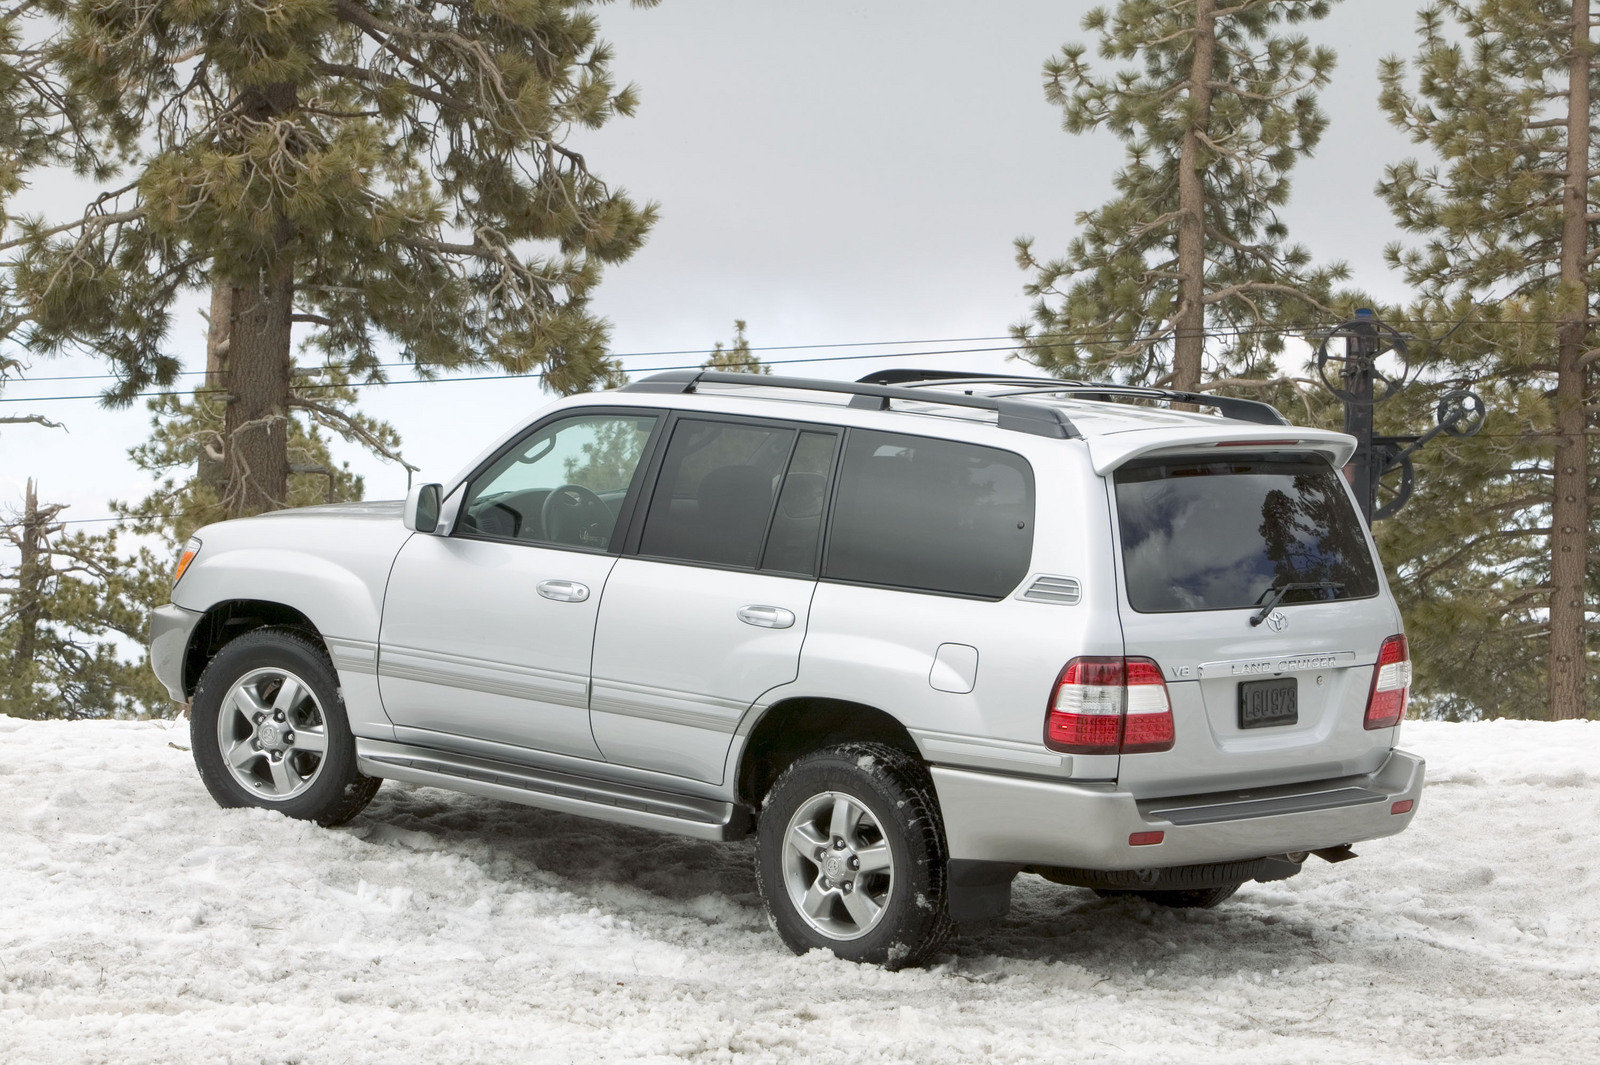 2006 toyota land cruiser picture 94387 car review. Black Bedroom Furniture Sets. Home Design Ideas